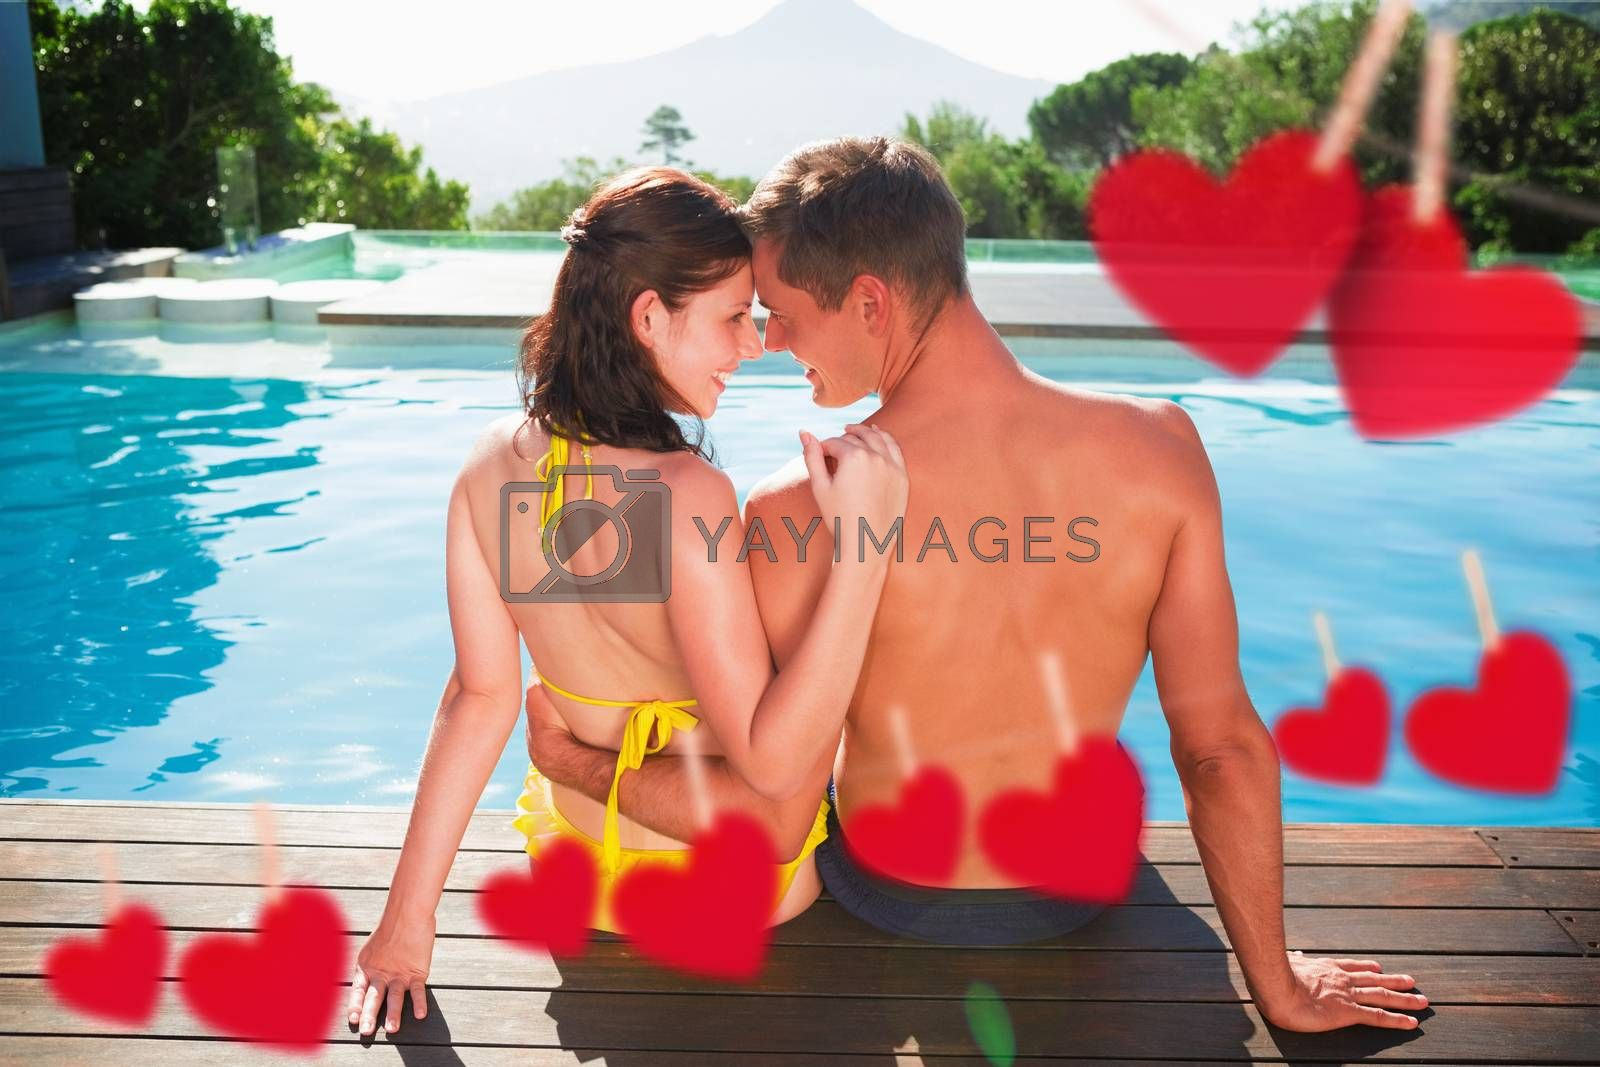 Couple sitting by swimming pool on a sunny day against hearts hanging on a line